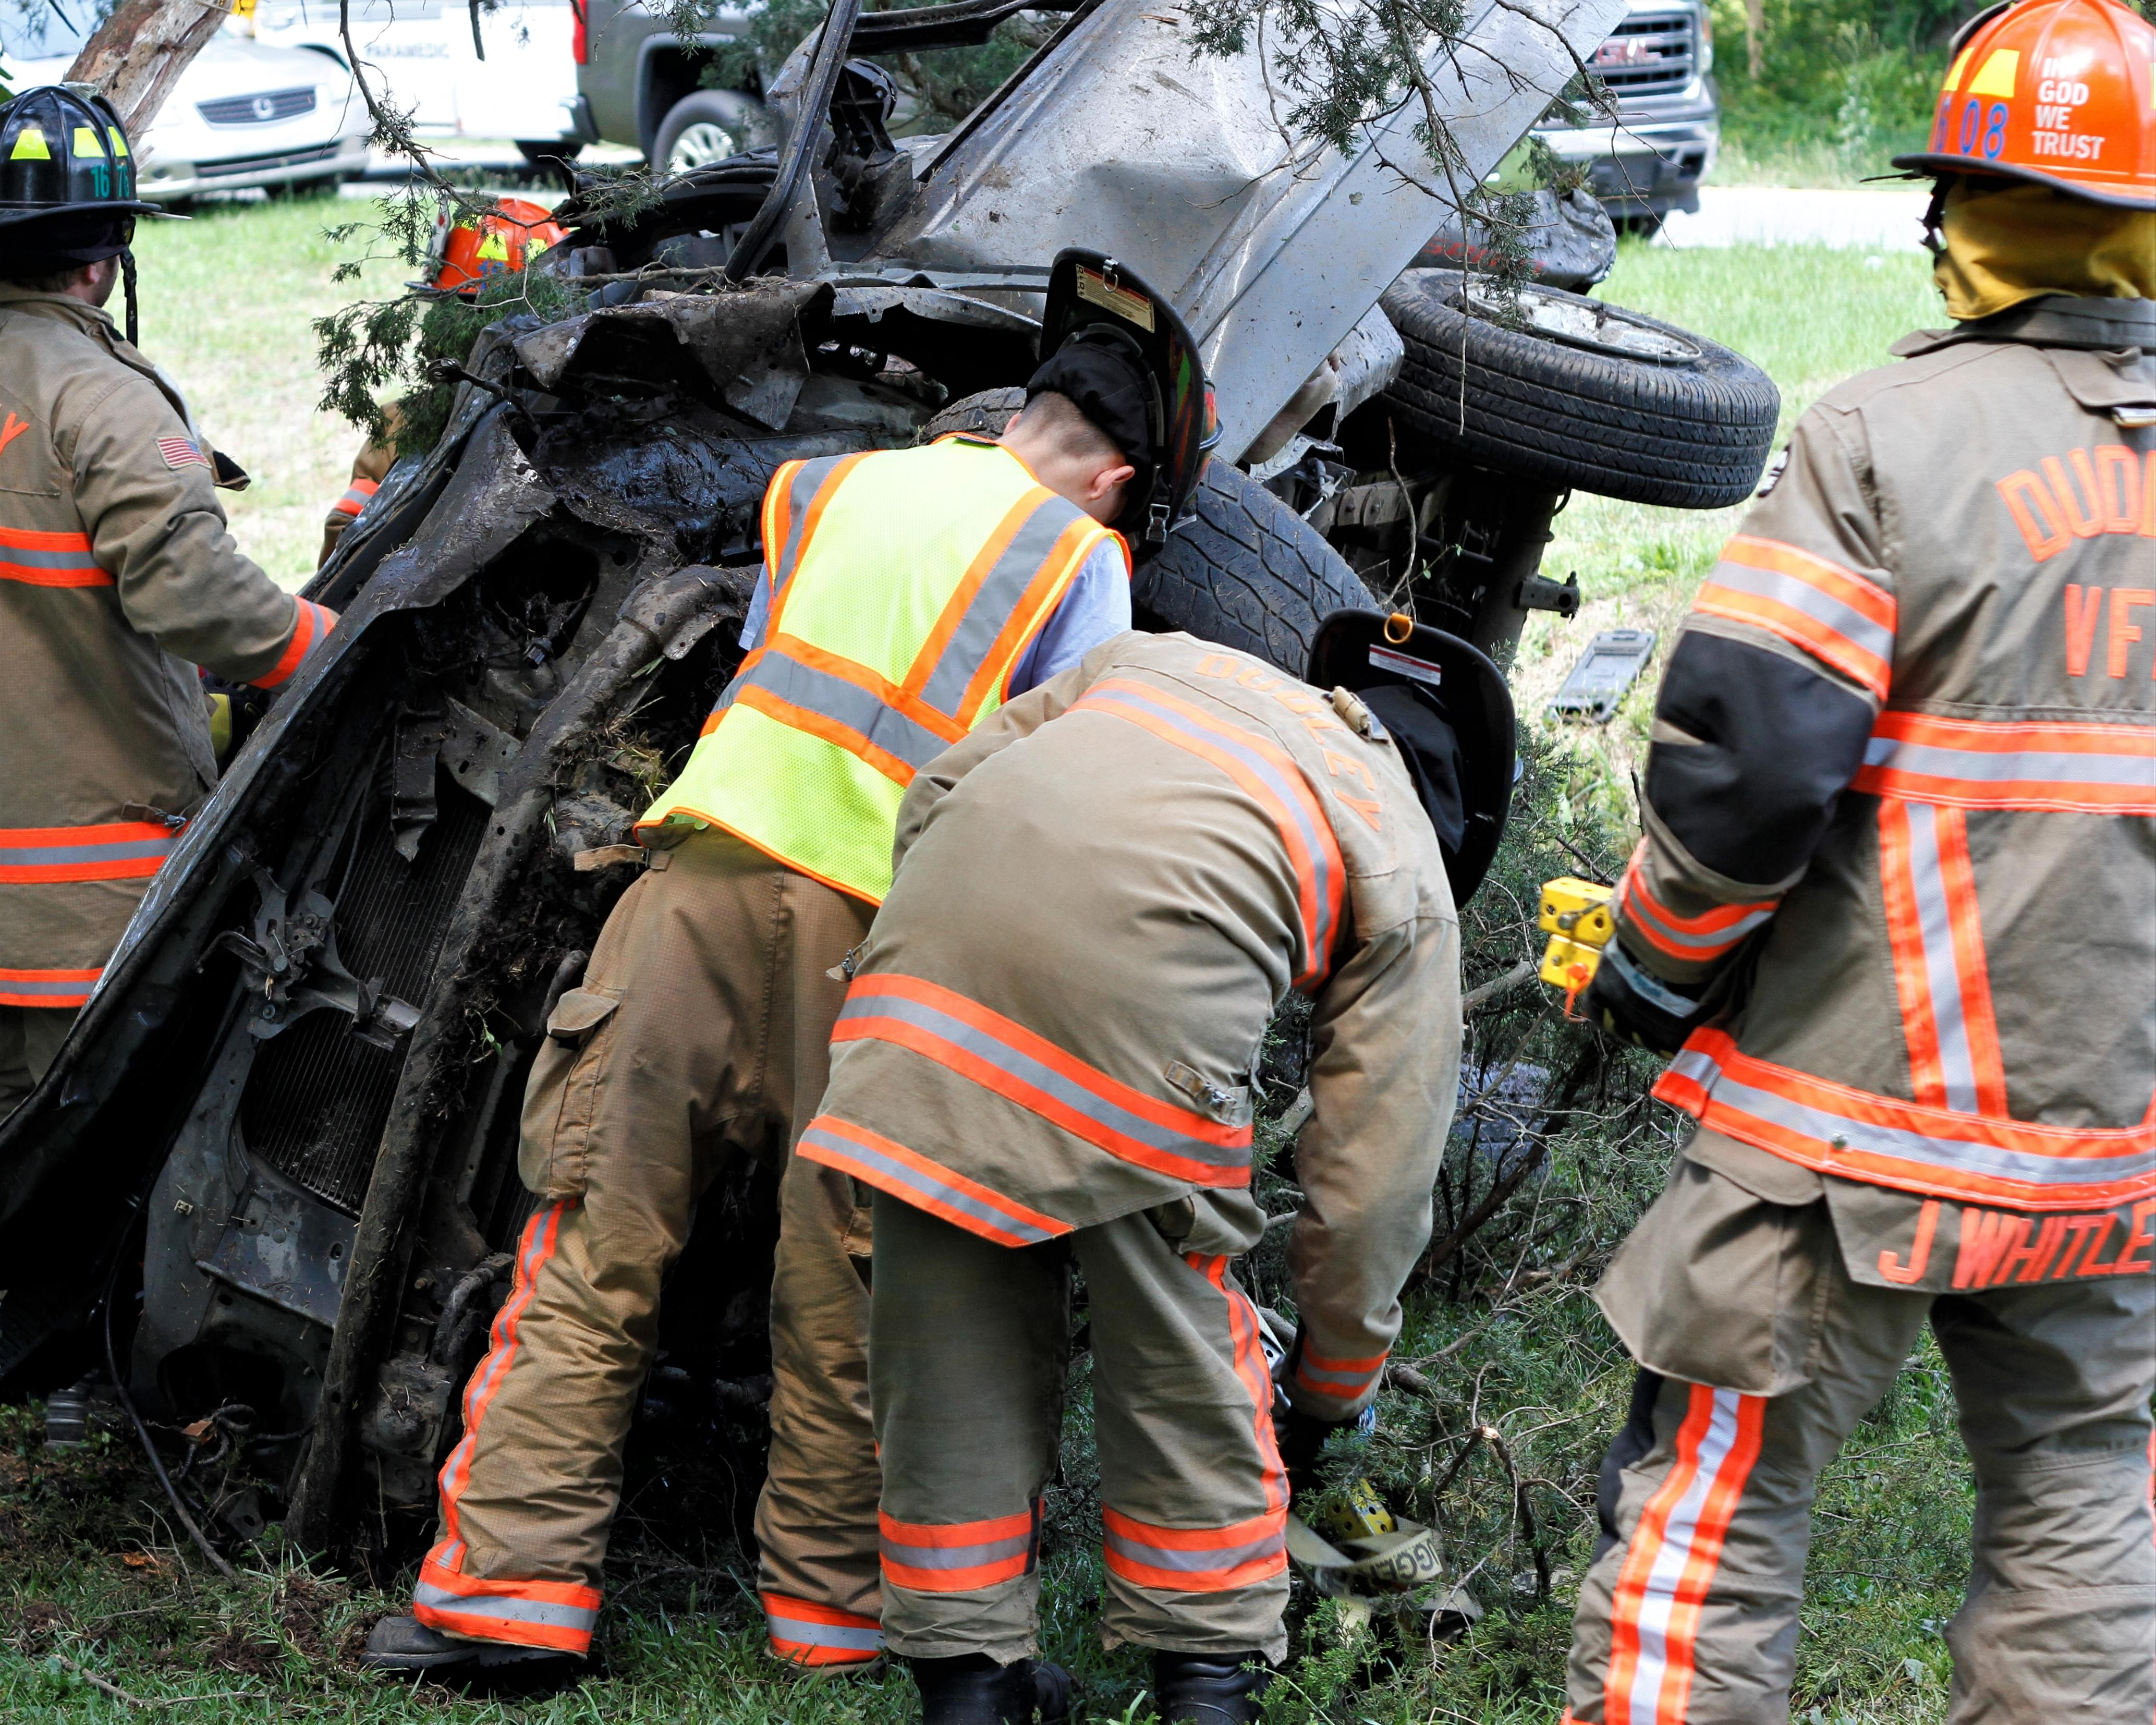 Driver Airlifted To Hospital Following Crash Near Brogden (PHOTOS)